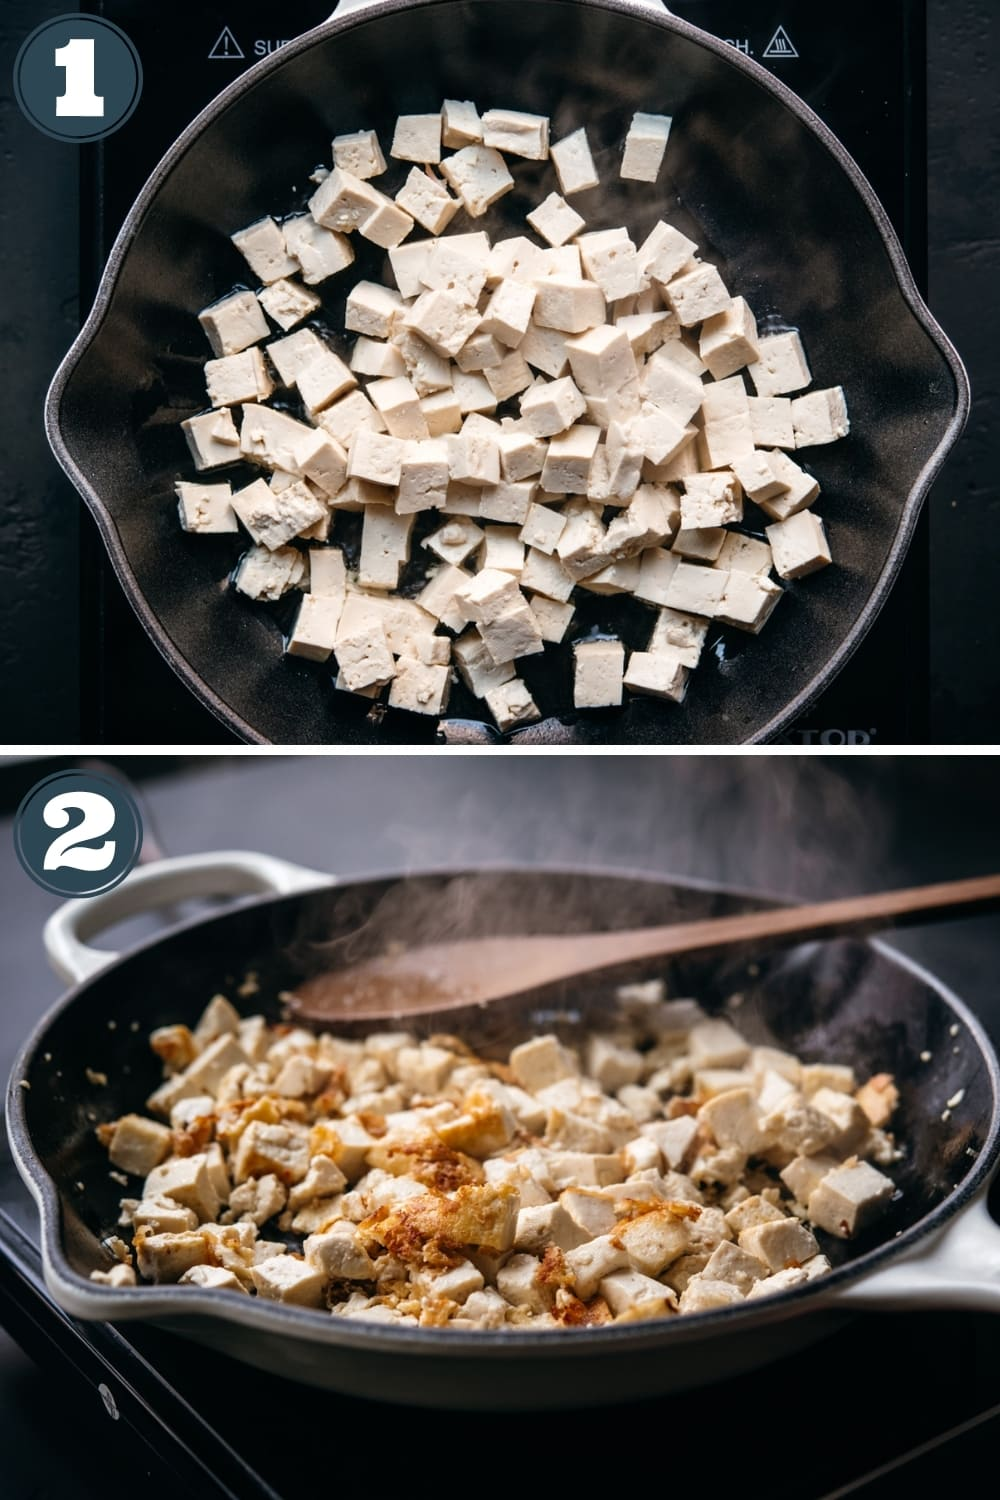 step-by-step instructions for making crispy tofu in a skillet.